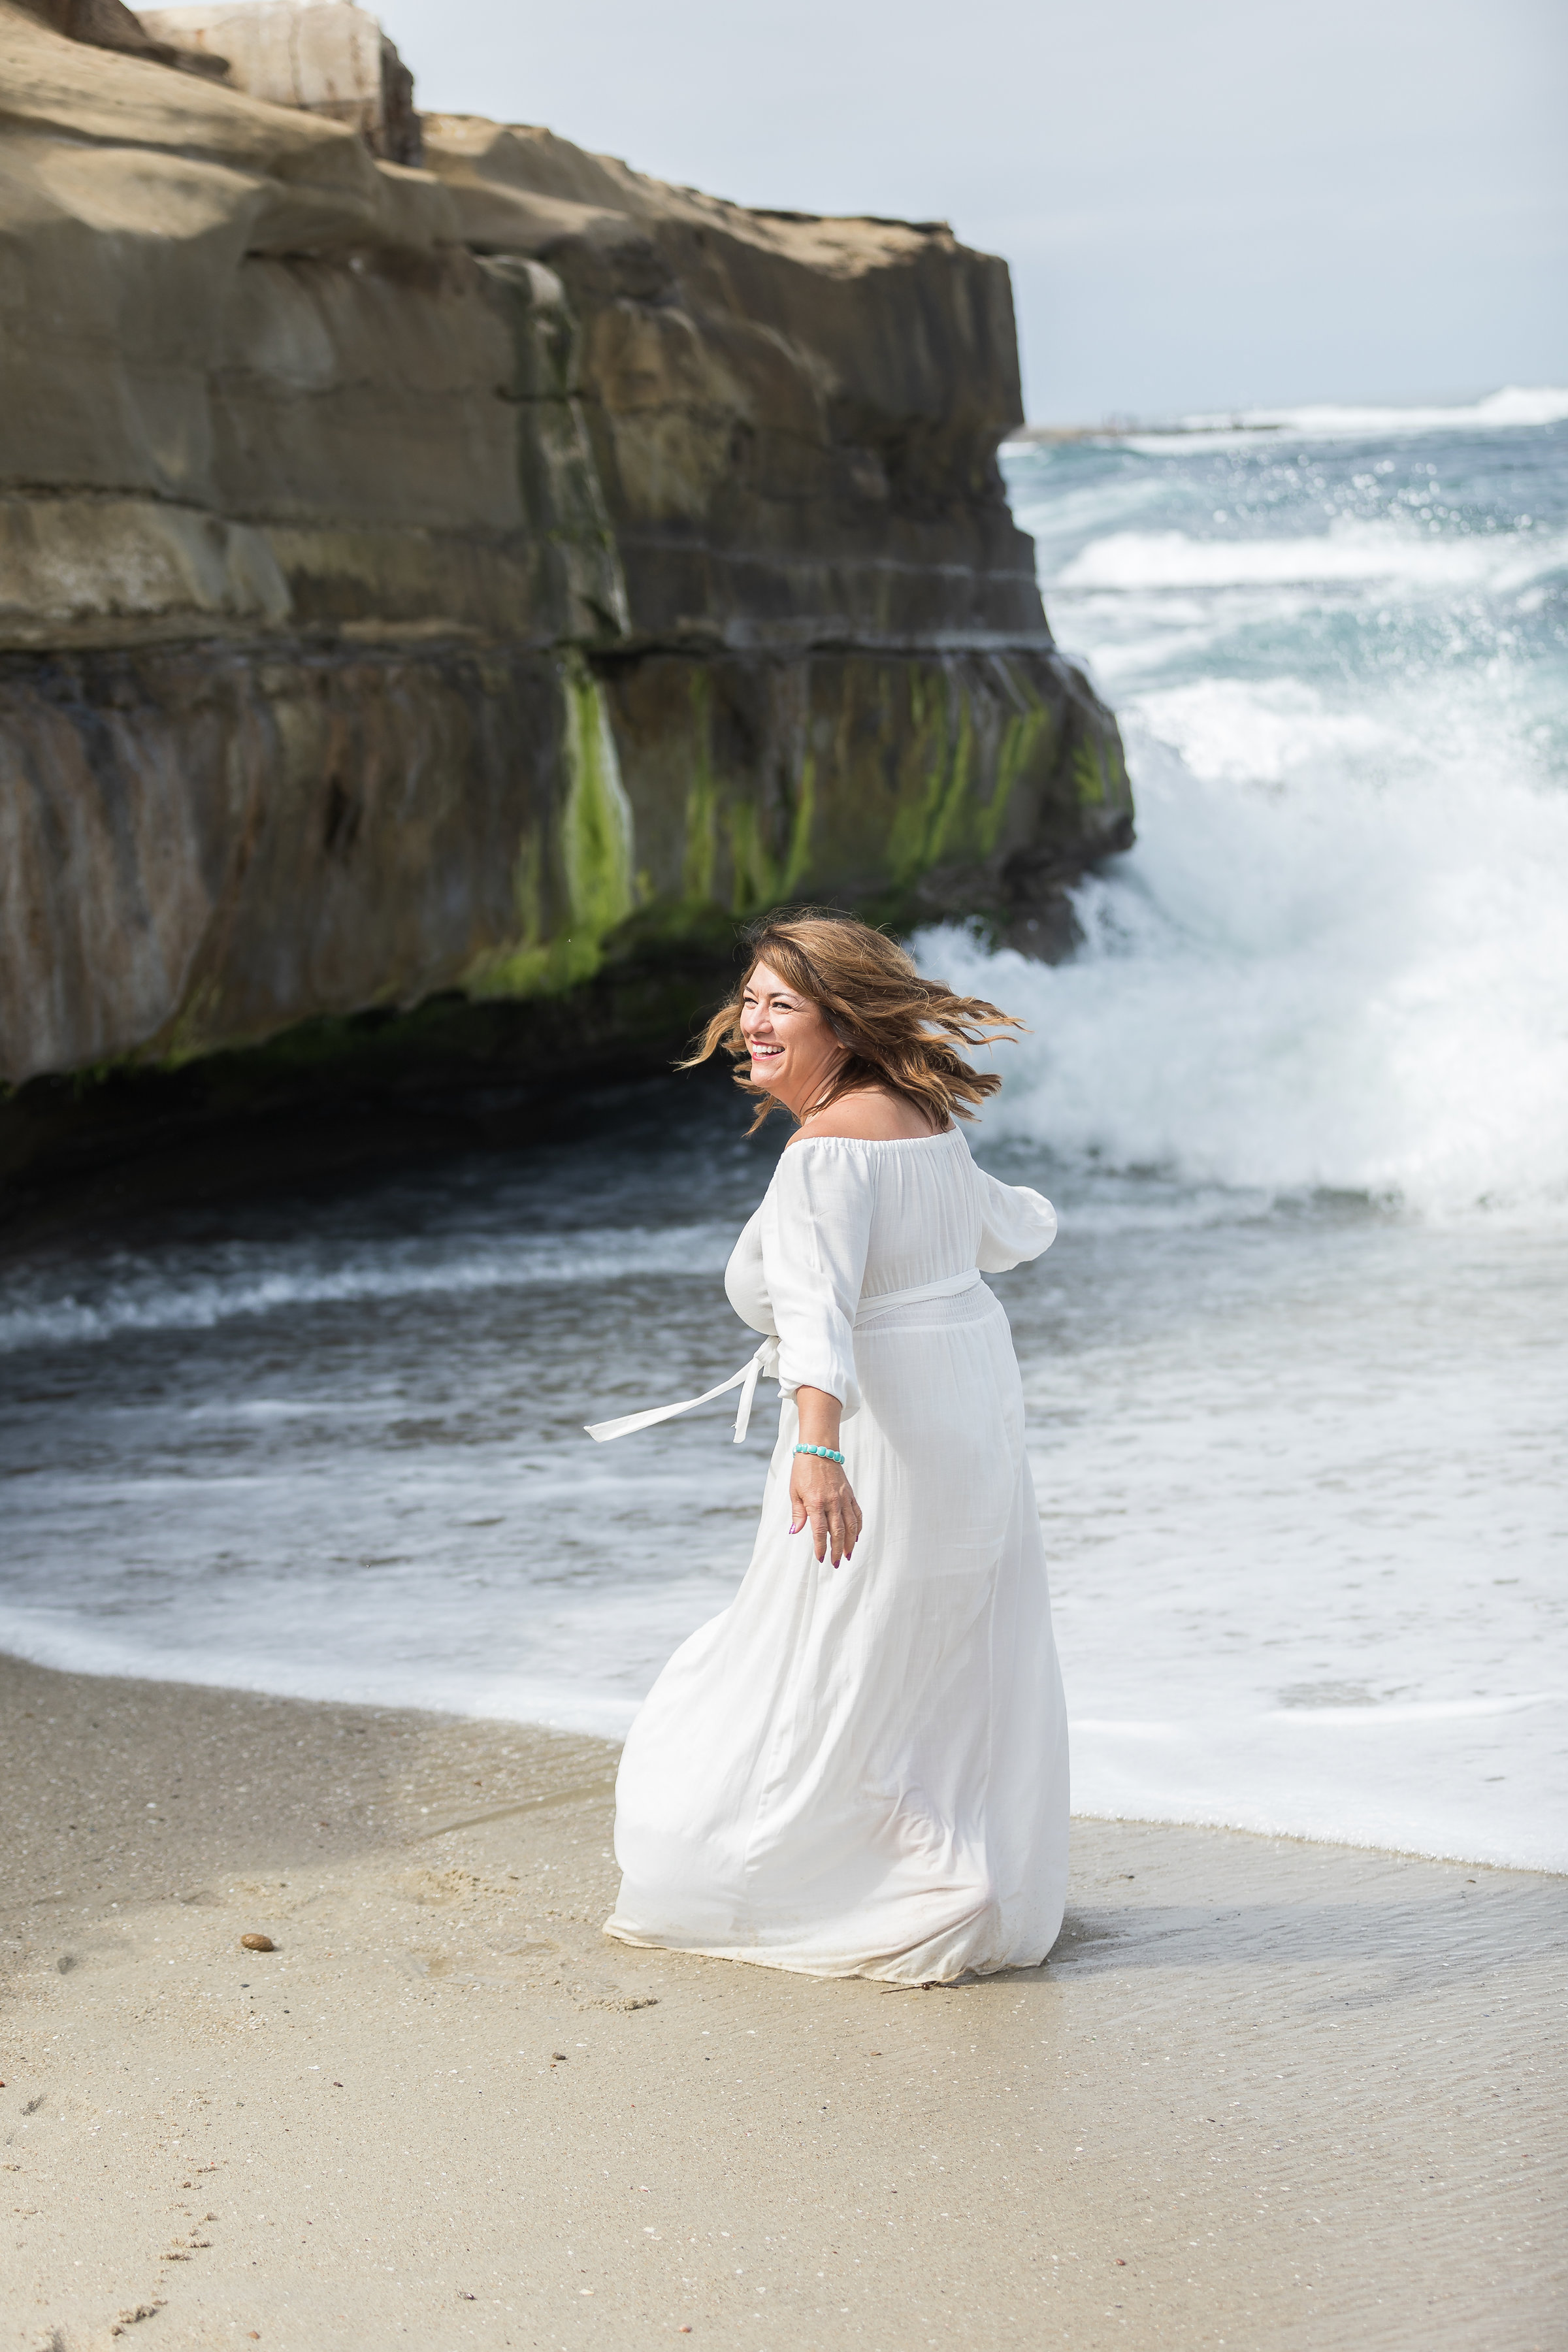 Mom playing in the ocean with long white dress.jpg